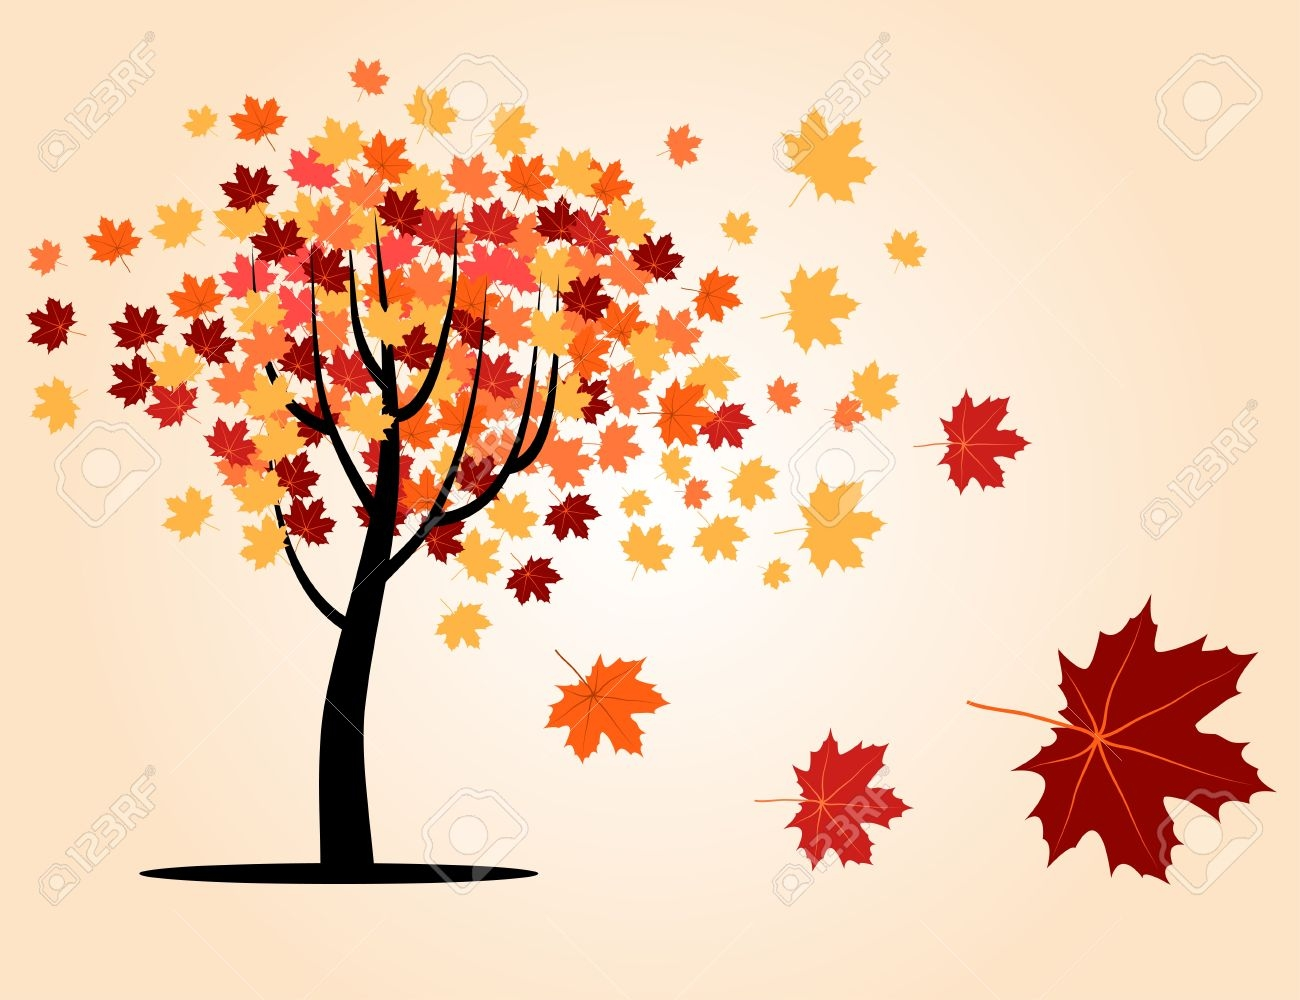 Tree with falling leaves clip art.